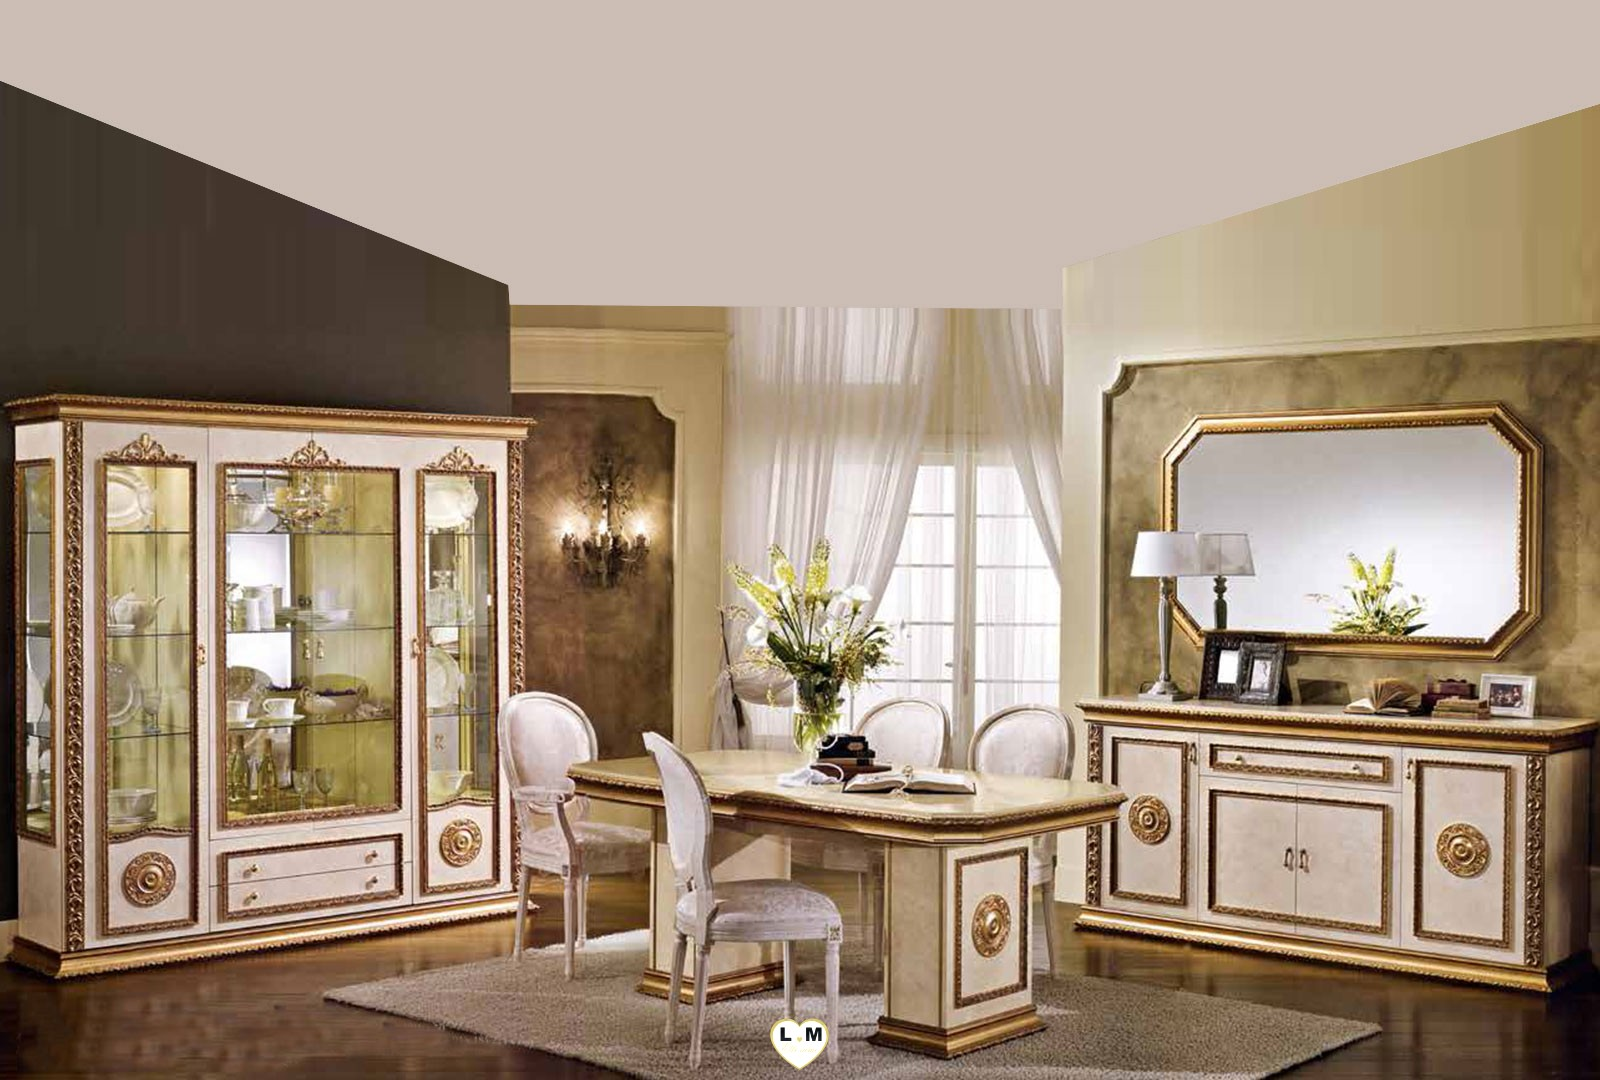 luigi laque ivoire et dore ensemble salle a manger. Black Bedroom Furniture Sets. Home Design Ideas